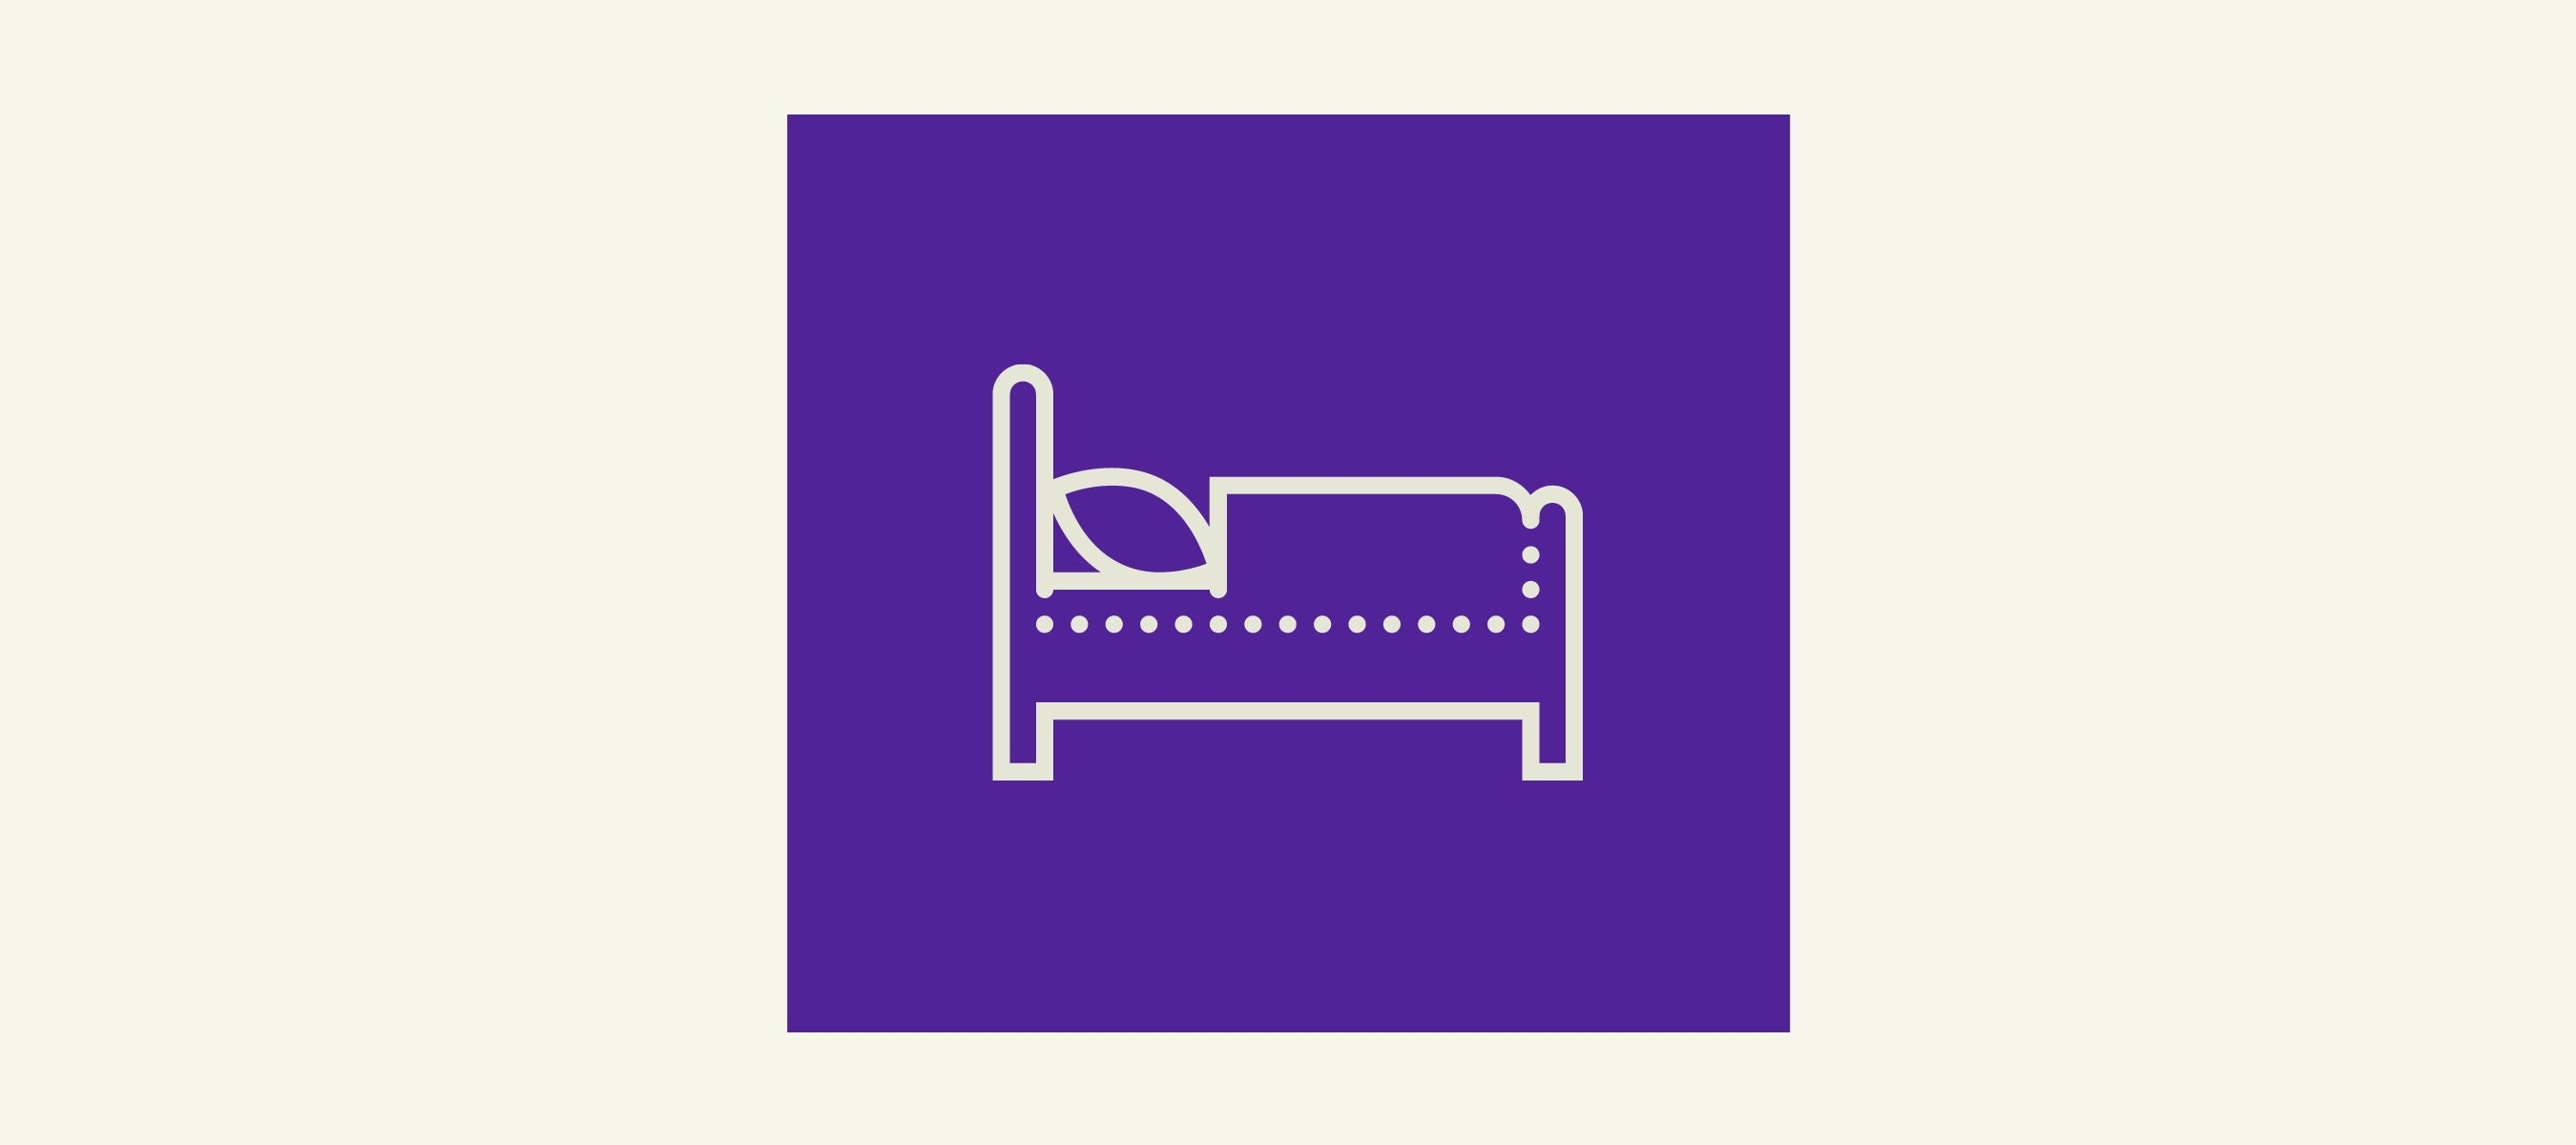 An adjustable bed is a great way to elevate your legs